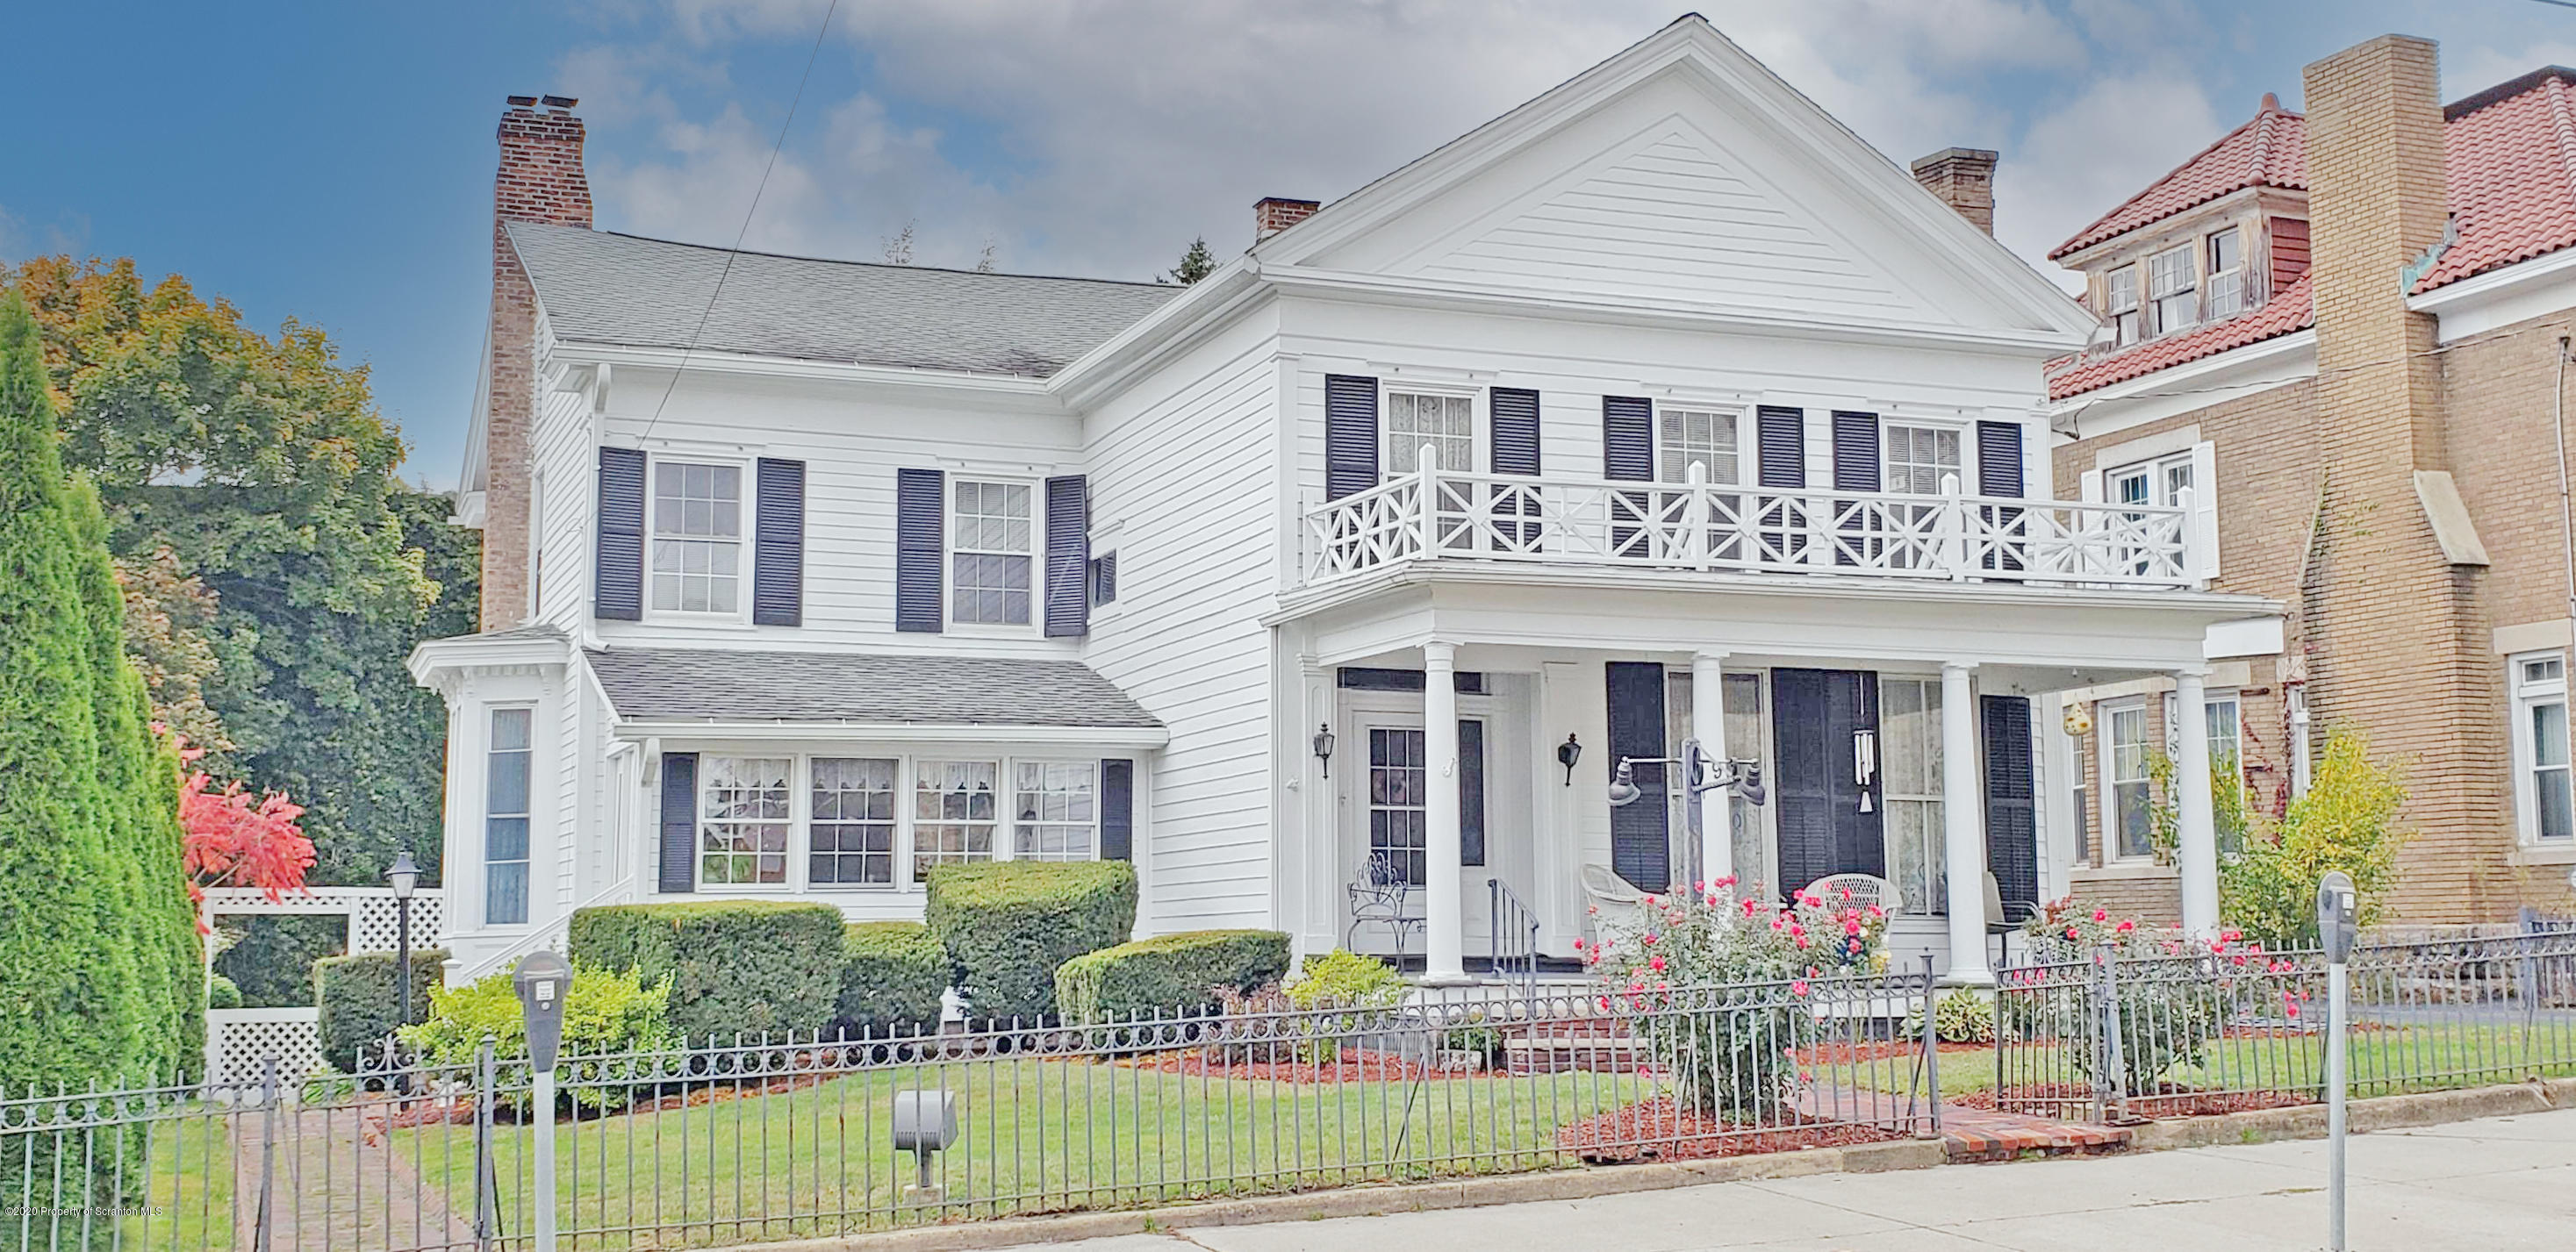 9 Church Street, Carbondale, Pennsylvania 18407, 4 Bedrooms Bedrooms, 9 Rooms Rooms,3 BathroomsBathrooms,Single Family,For Sale,Church,20-4544